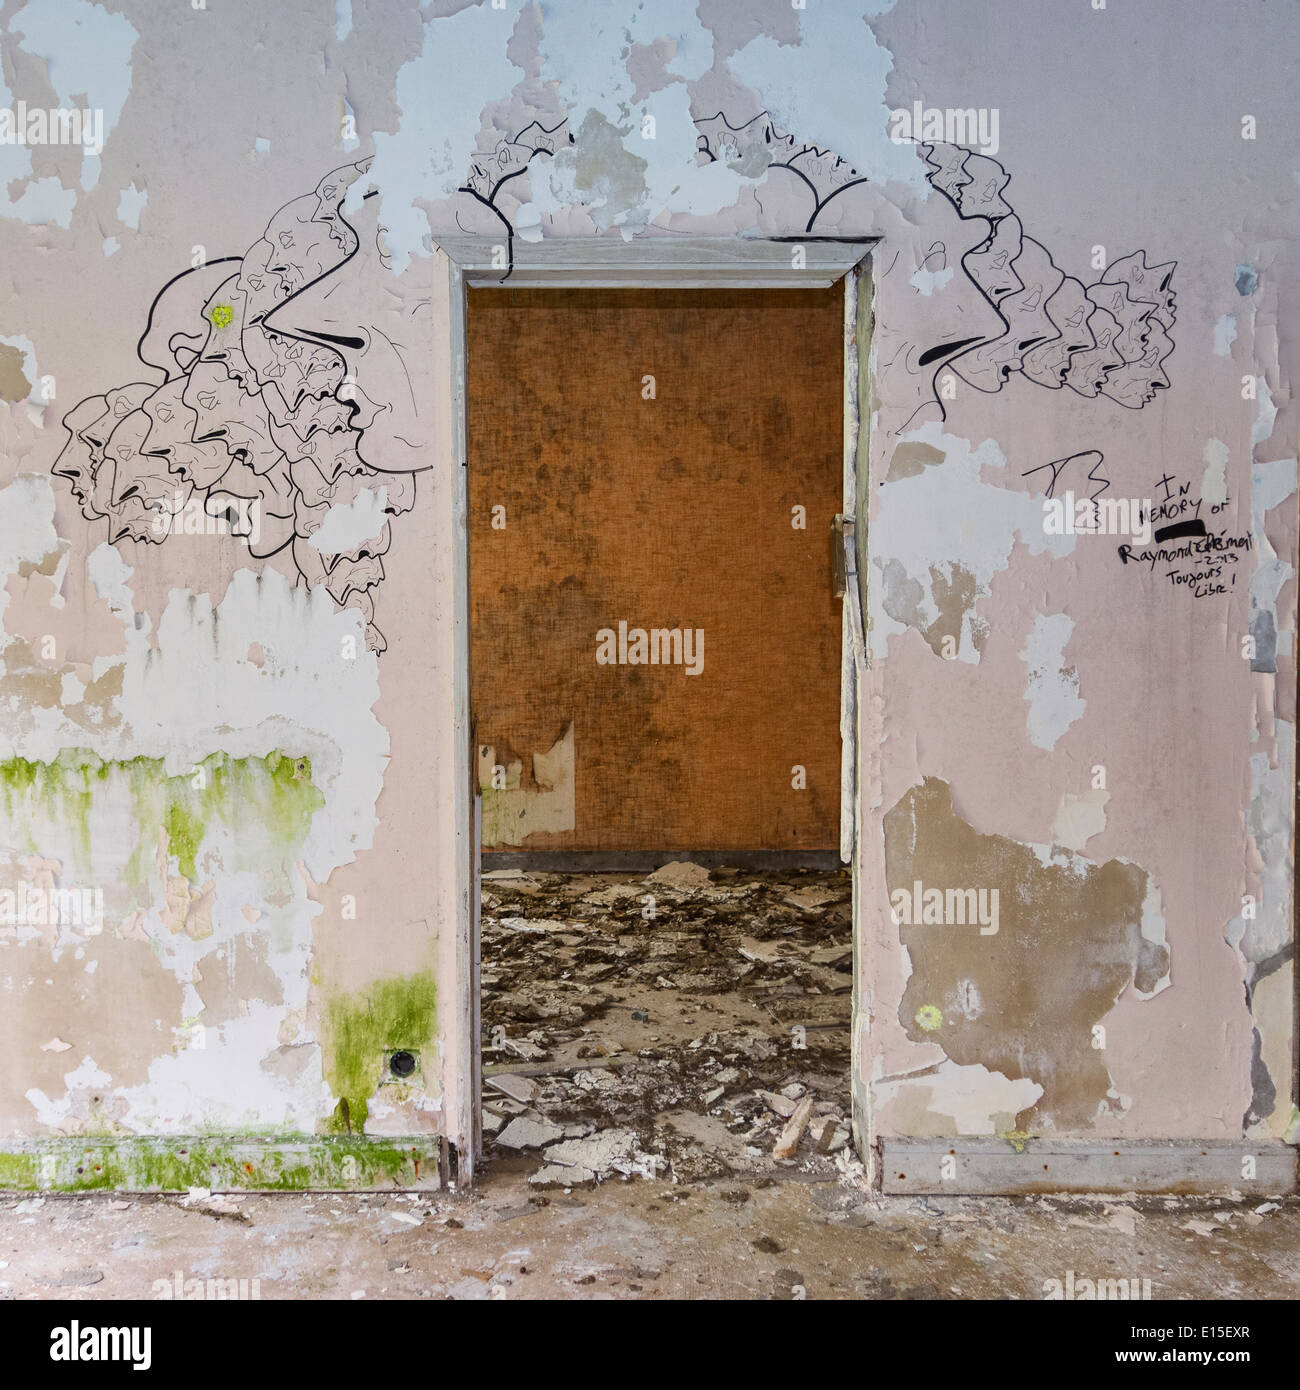 Portugal, Azores, San Miguel, doorframe and drawings on wall in empty hotel ruin - Stock Image